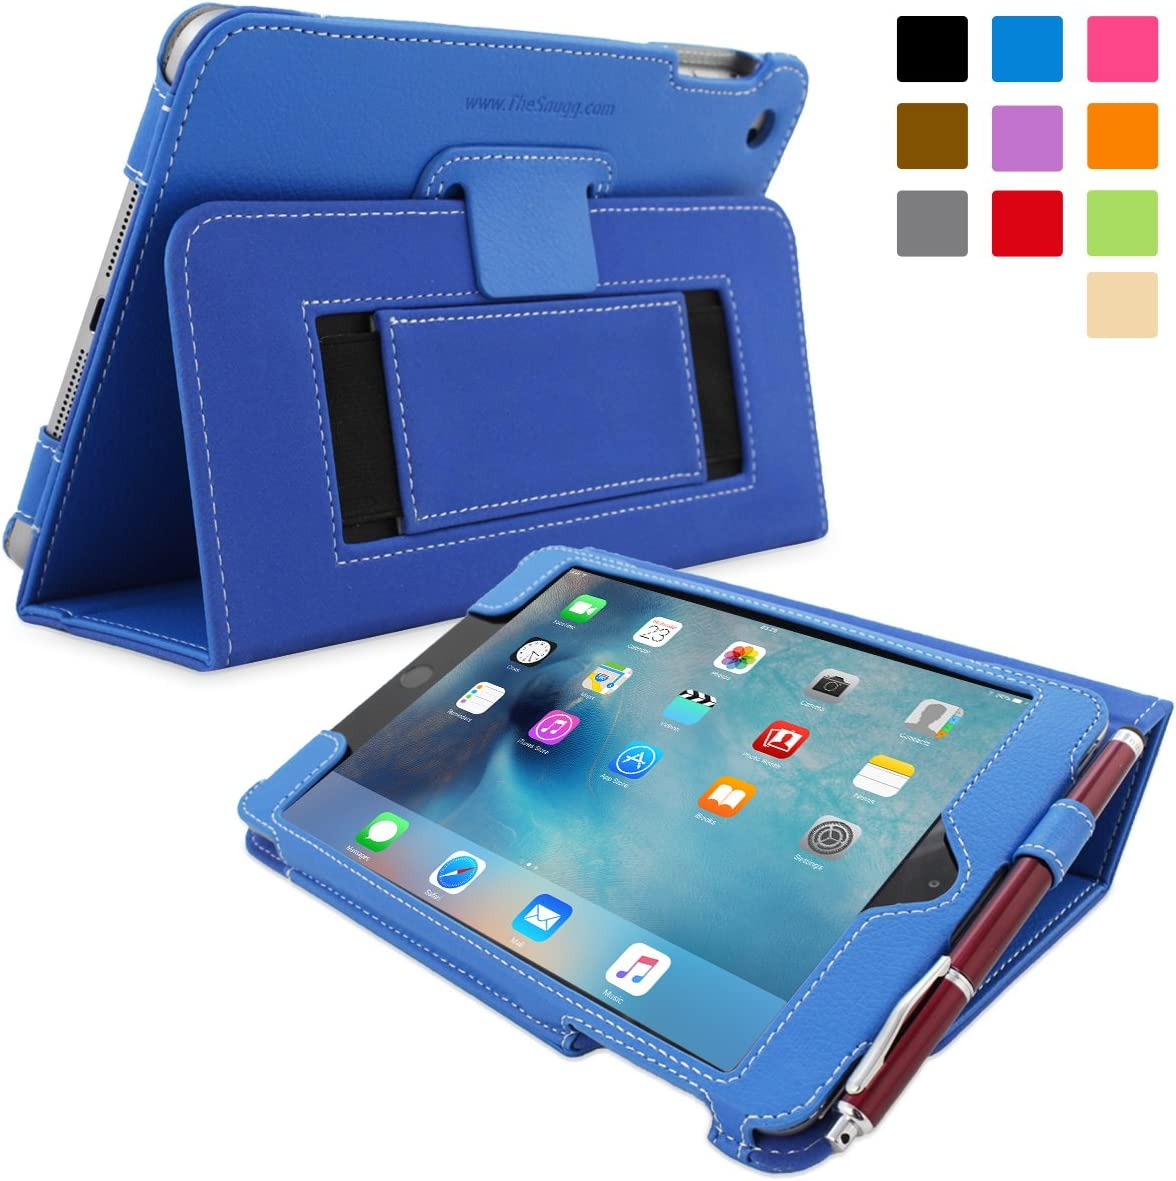 Snugg iPad Mini 5 (2019) & iPad Mini 4 (2015) Leather Case, Flip Stand Cover - Electric Blue